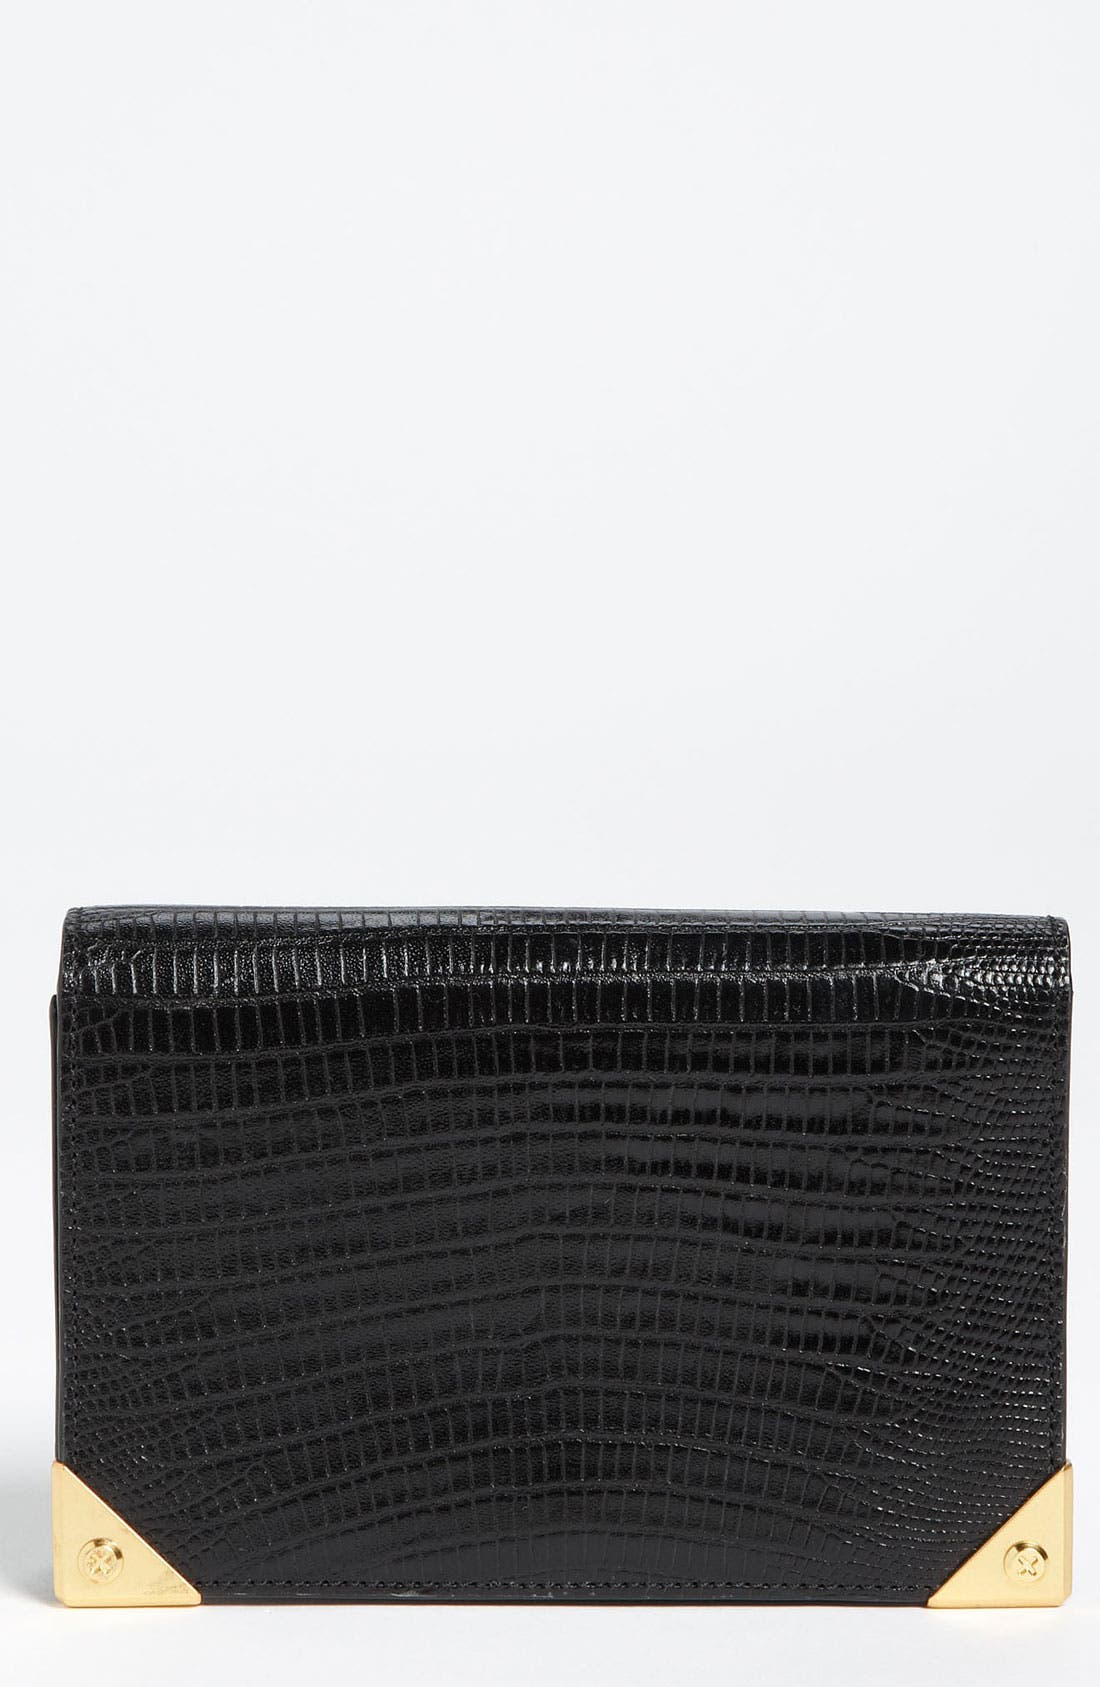 Main Image - Alexander Wang 'Prisma' Leather Coin Purse